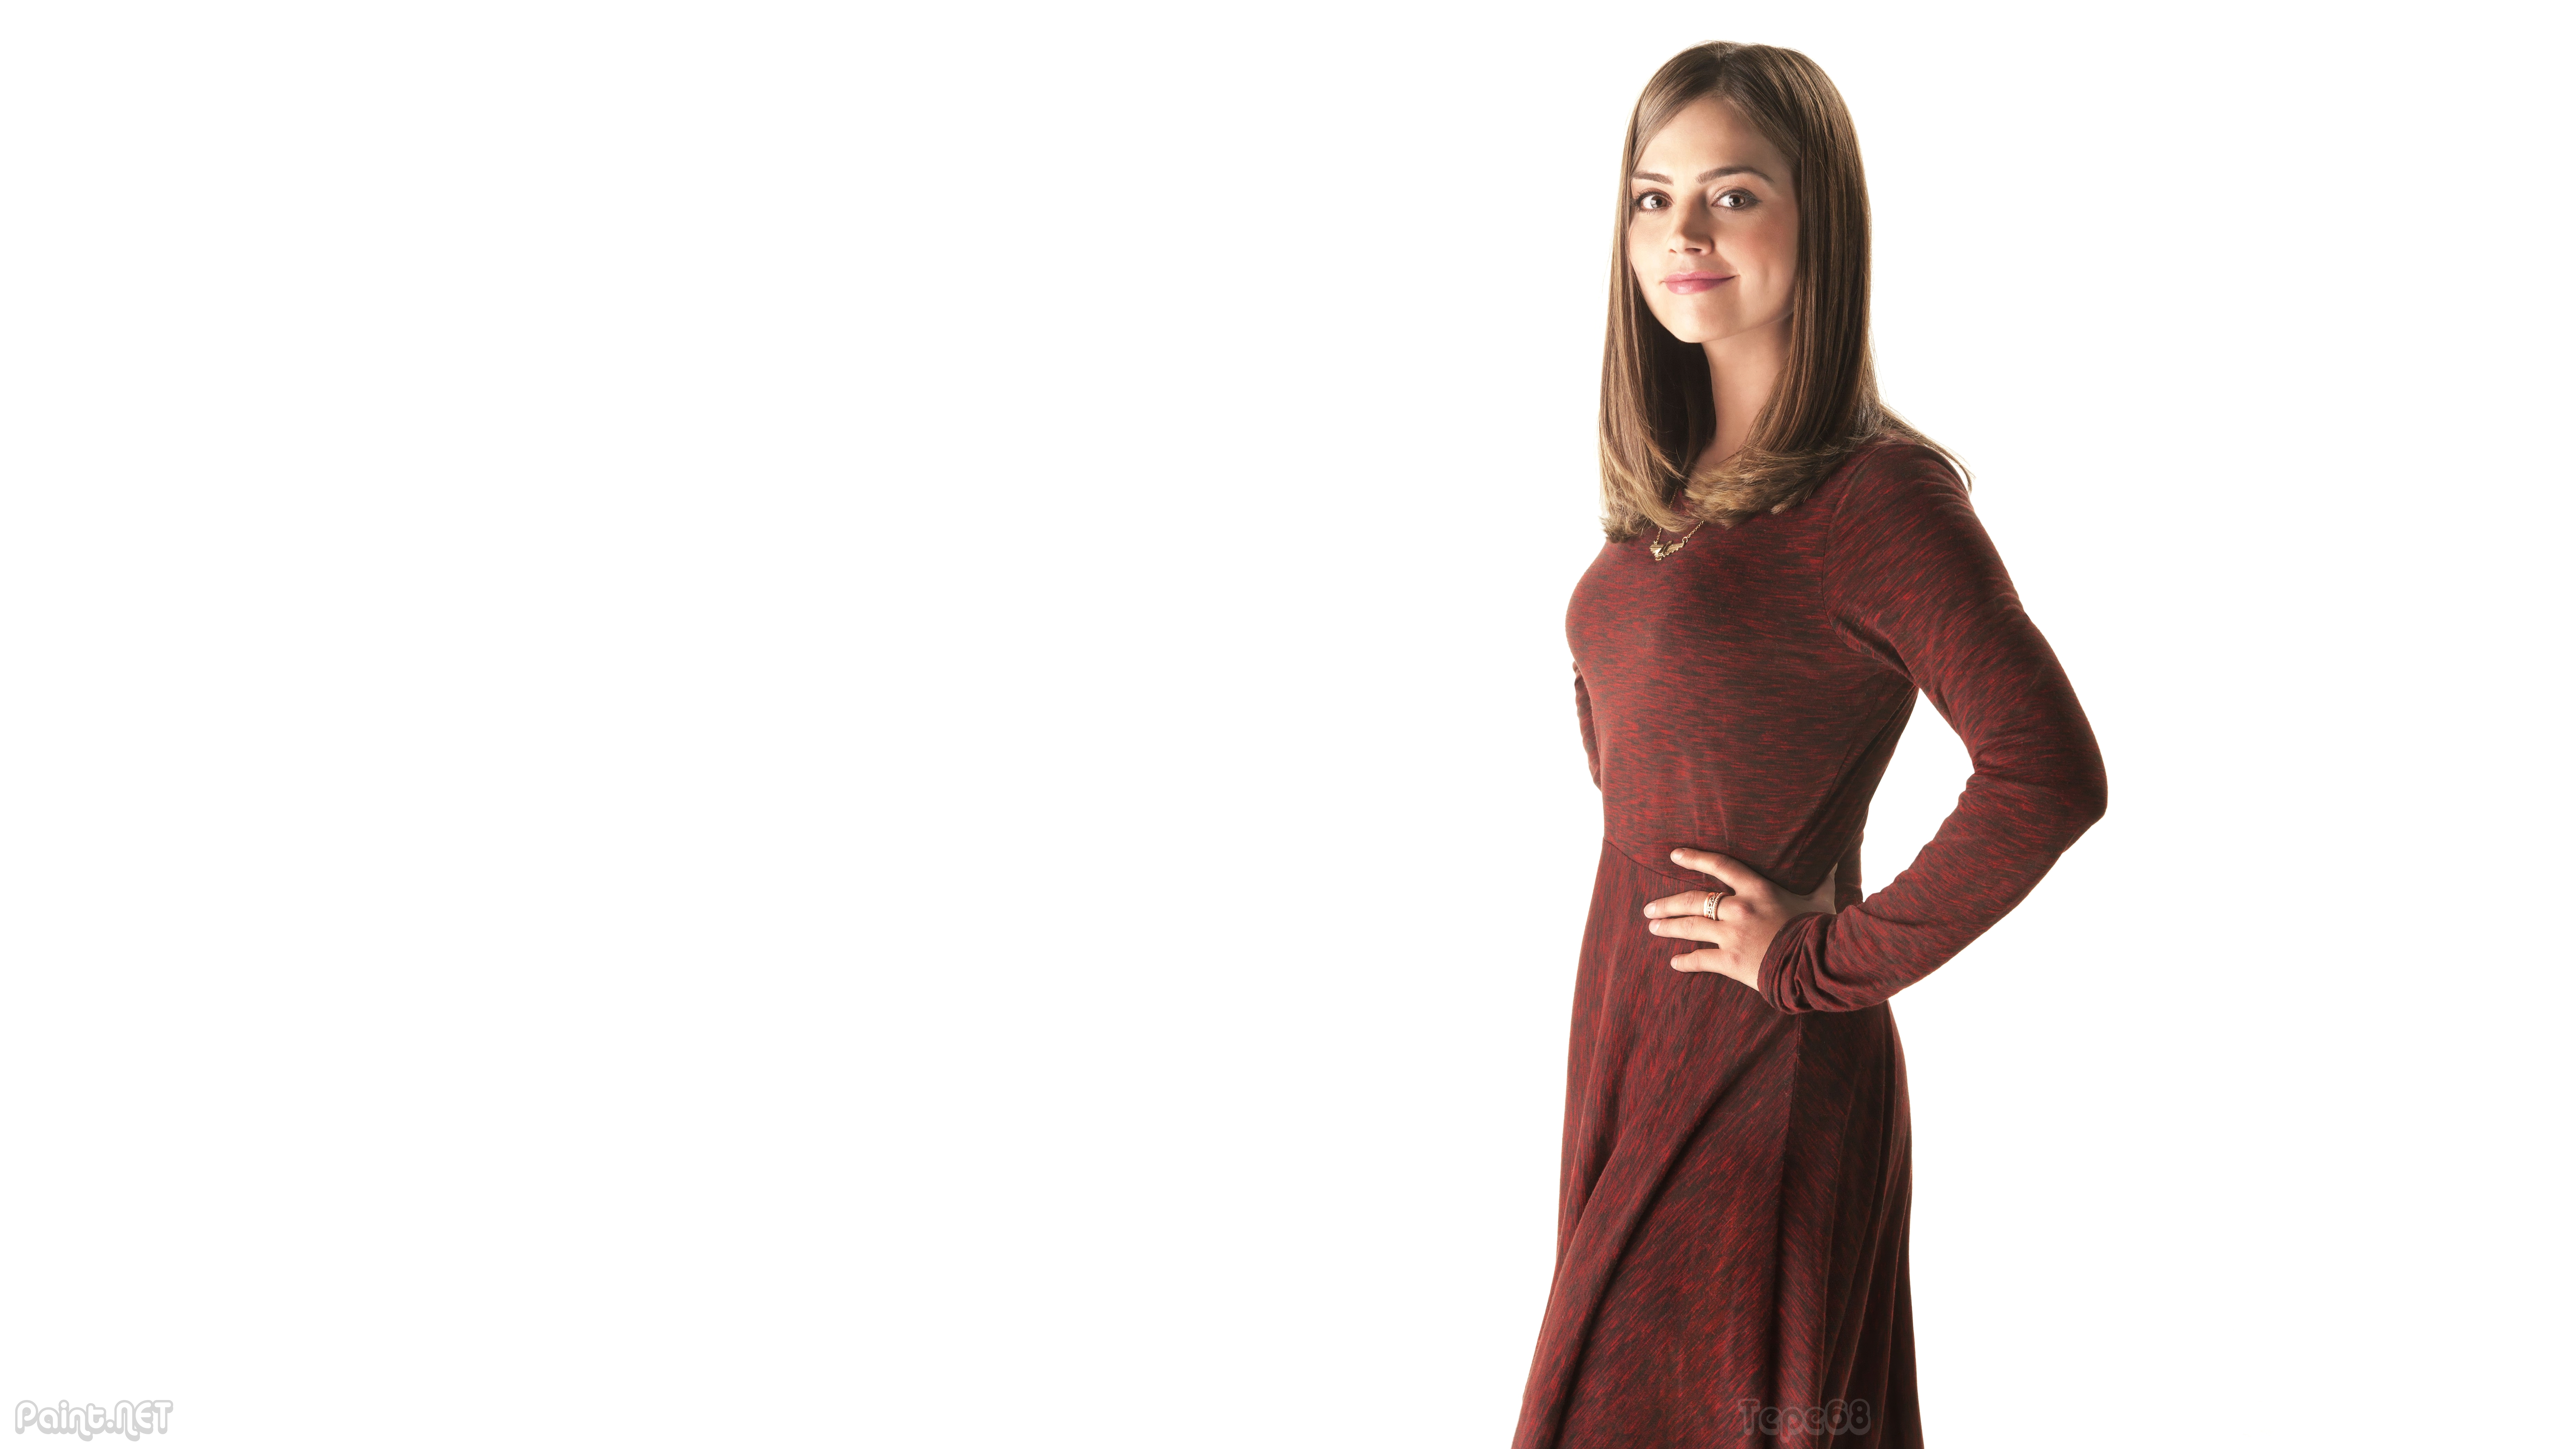 7467x4200 - Jenna-Louise Coleman Wallpapers 5